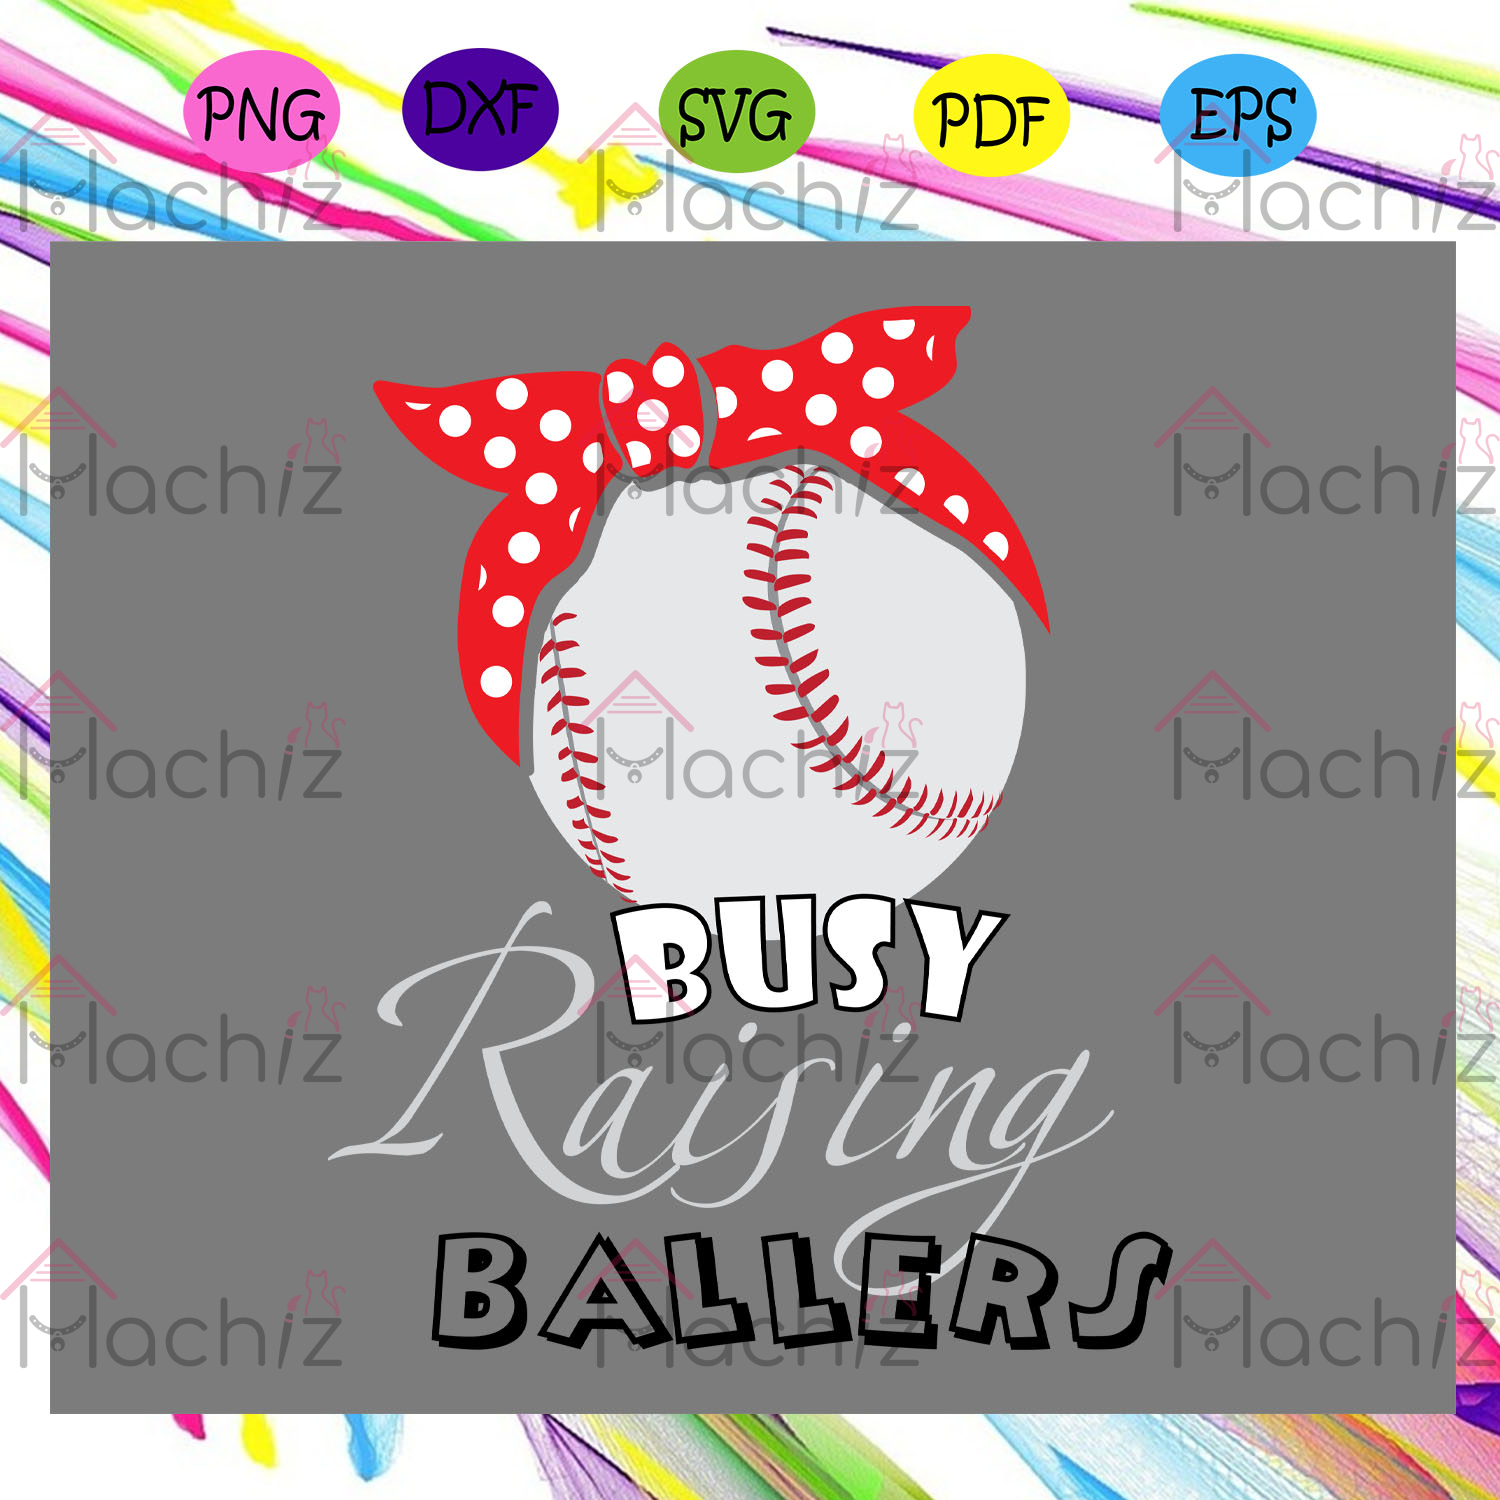 Busy raising baller , Mothers Day Gift,Trendy Mom,trending svg, Files For Silhouette, Files For Cricut, SVG, DXF, EPS, PNG, Instant Download